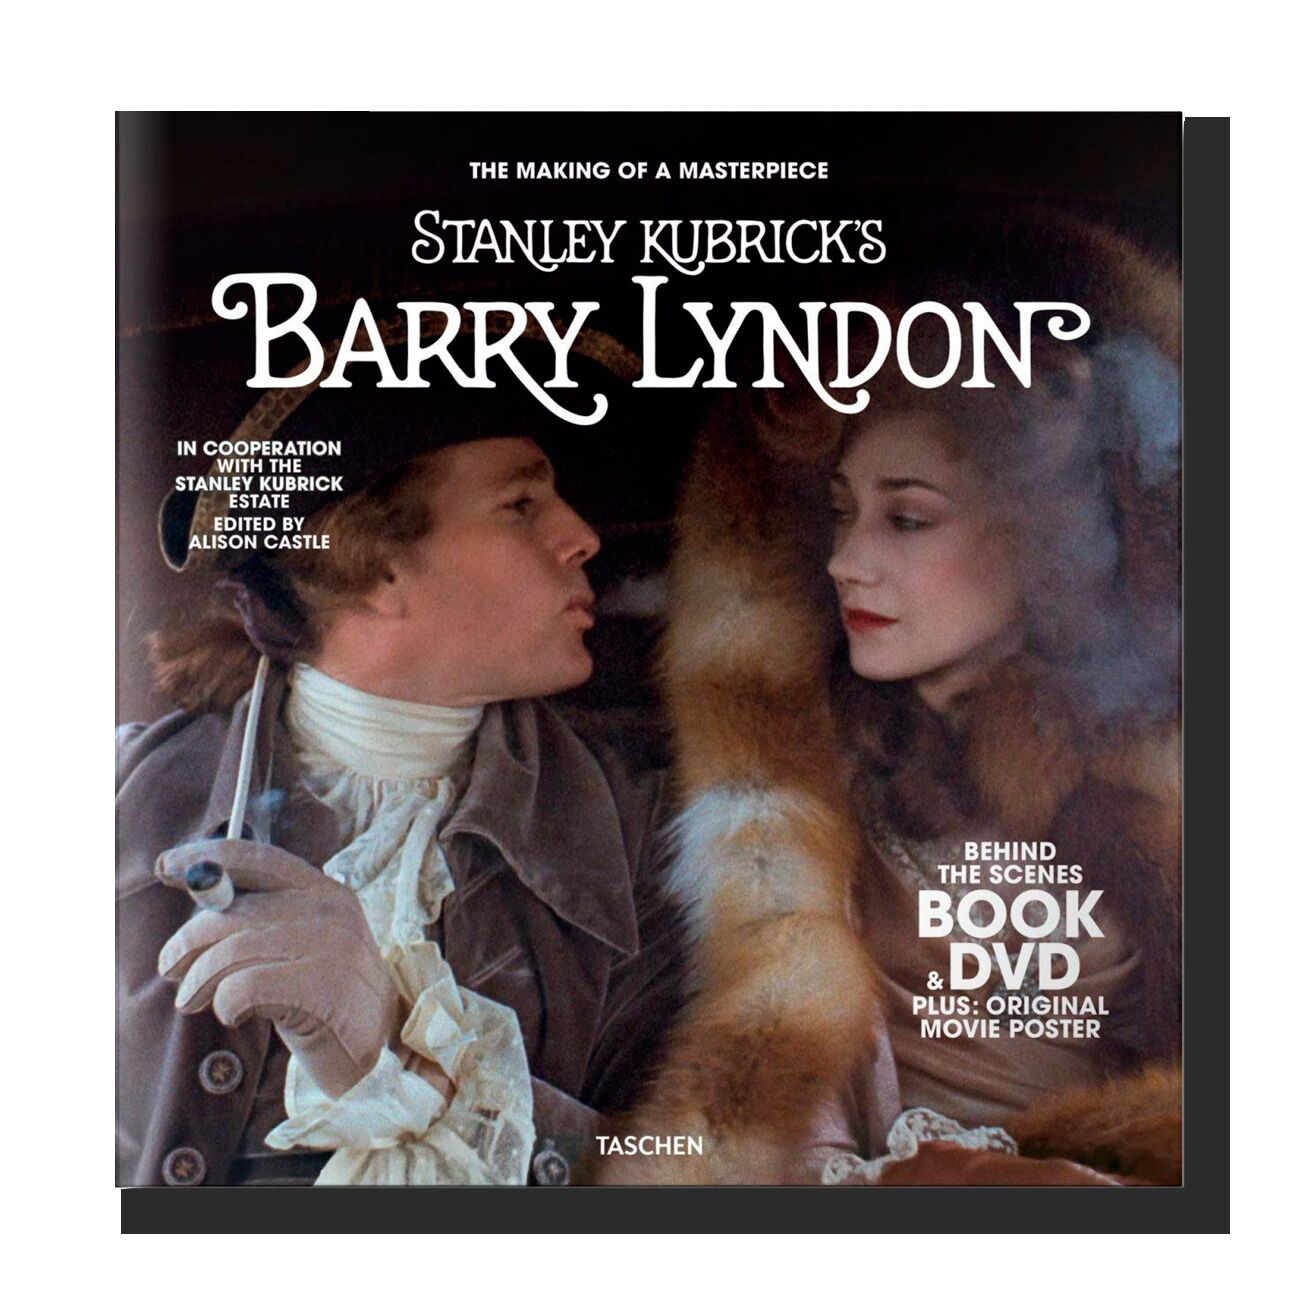 Kubrick's Barry Lyndon. Book & DVD Set